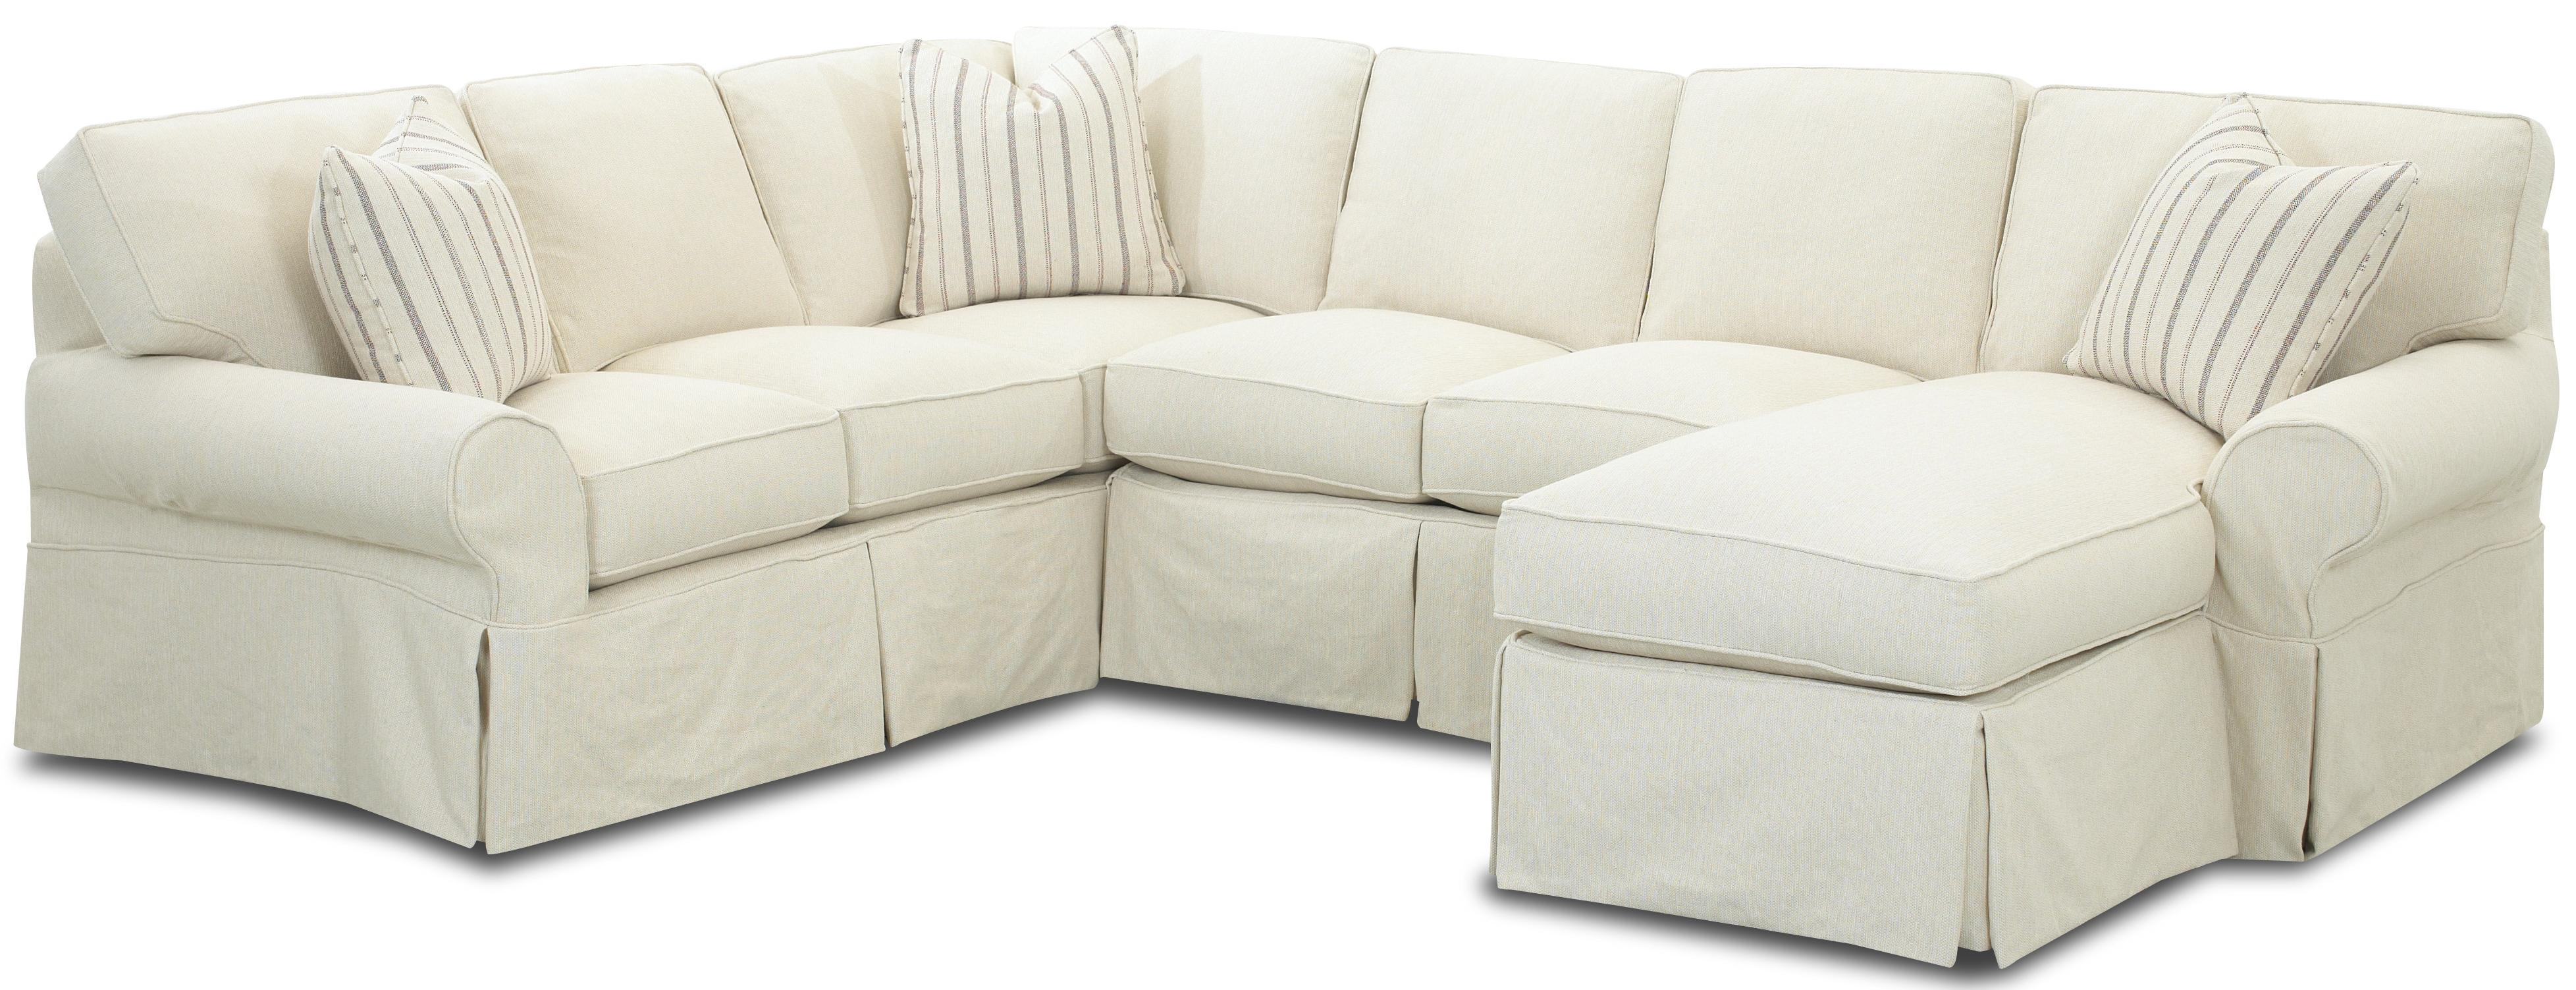 Living Room Design: Sofa Covers For Sectionals